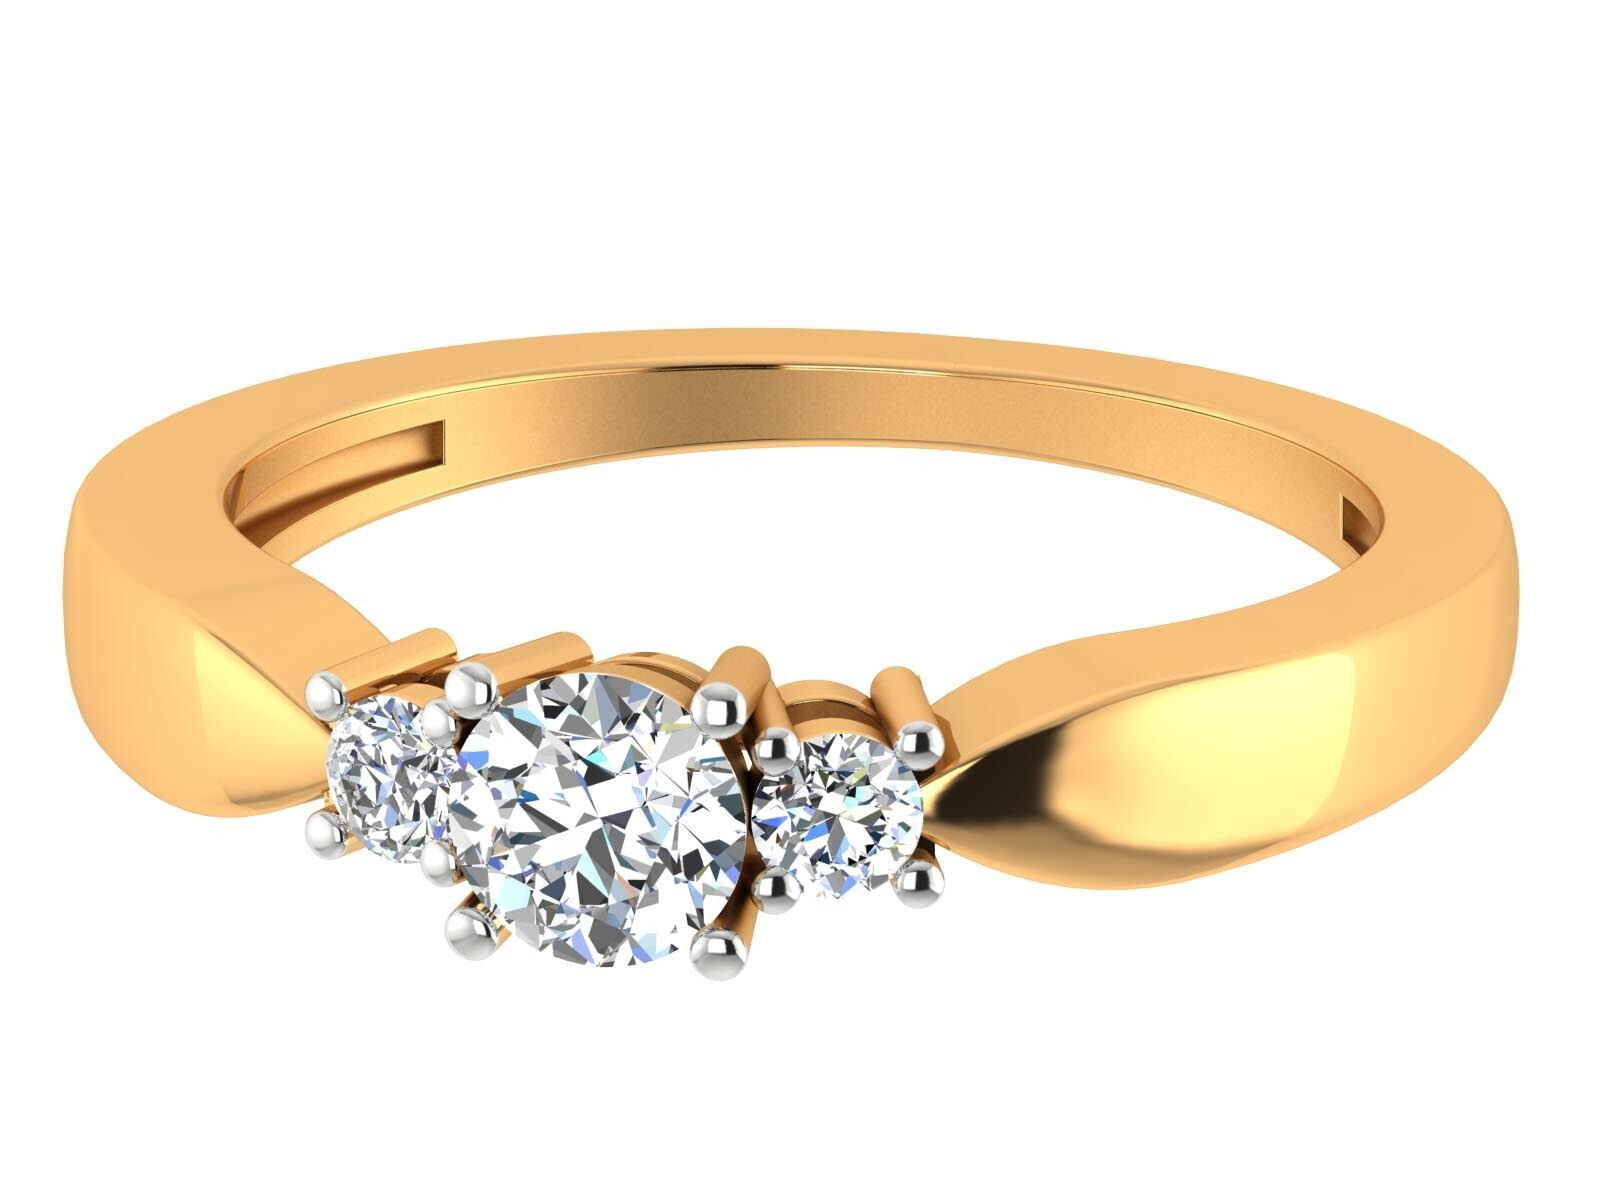 0.47Ct Certifed Brilliant Cut Solitaire Diamond 14k yellow gold Wedding Ring